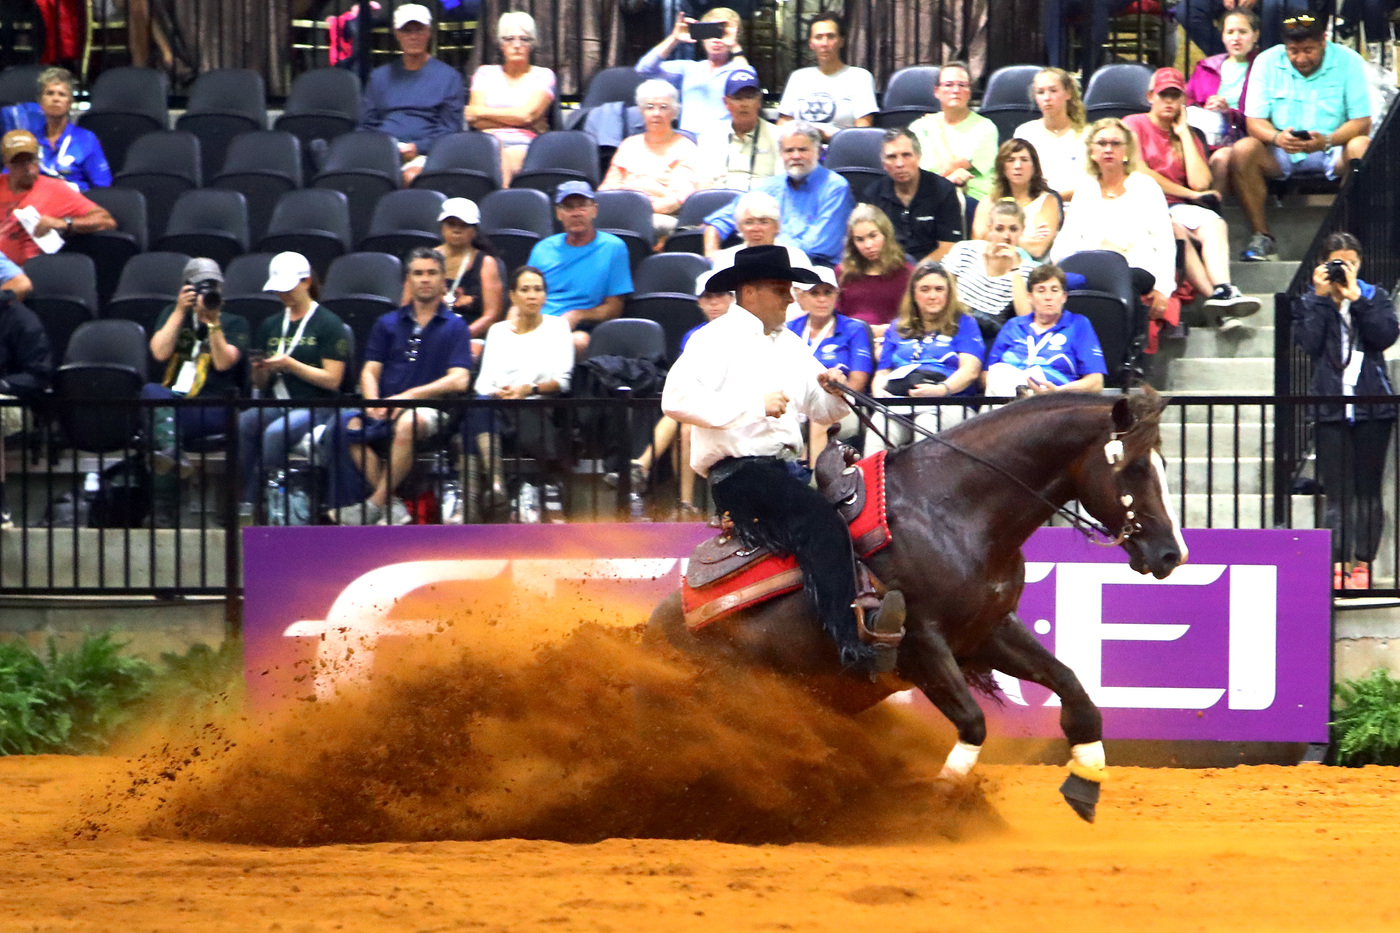 Longines Eventing Event: Performance at its peak during the first week of the  FEI World Equestrian GamesTM Tryon 2018 3